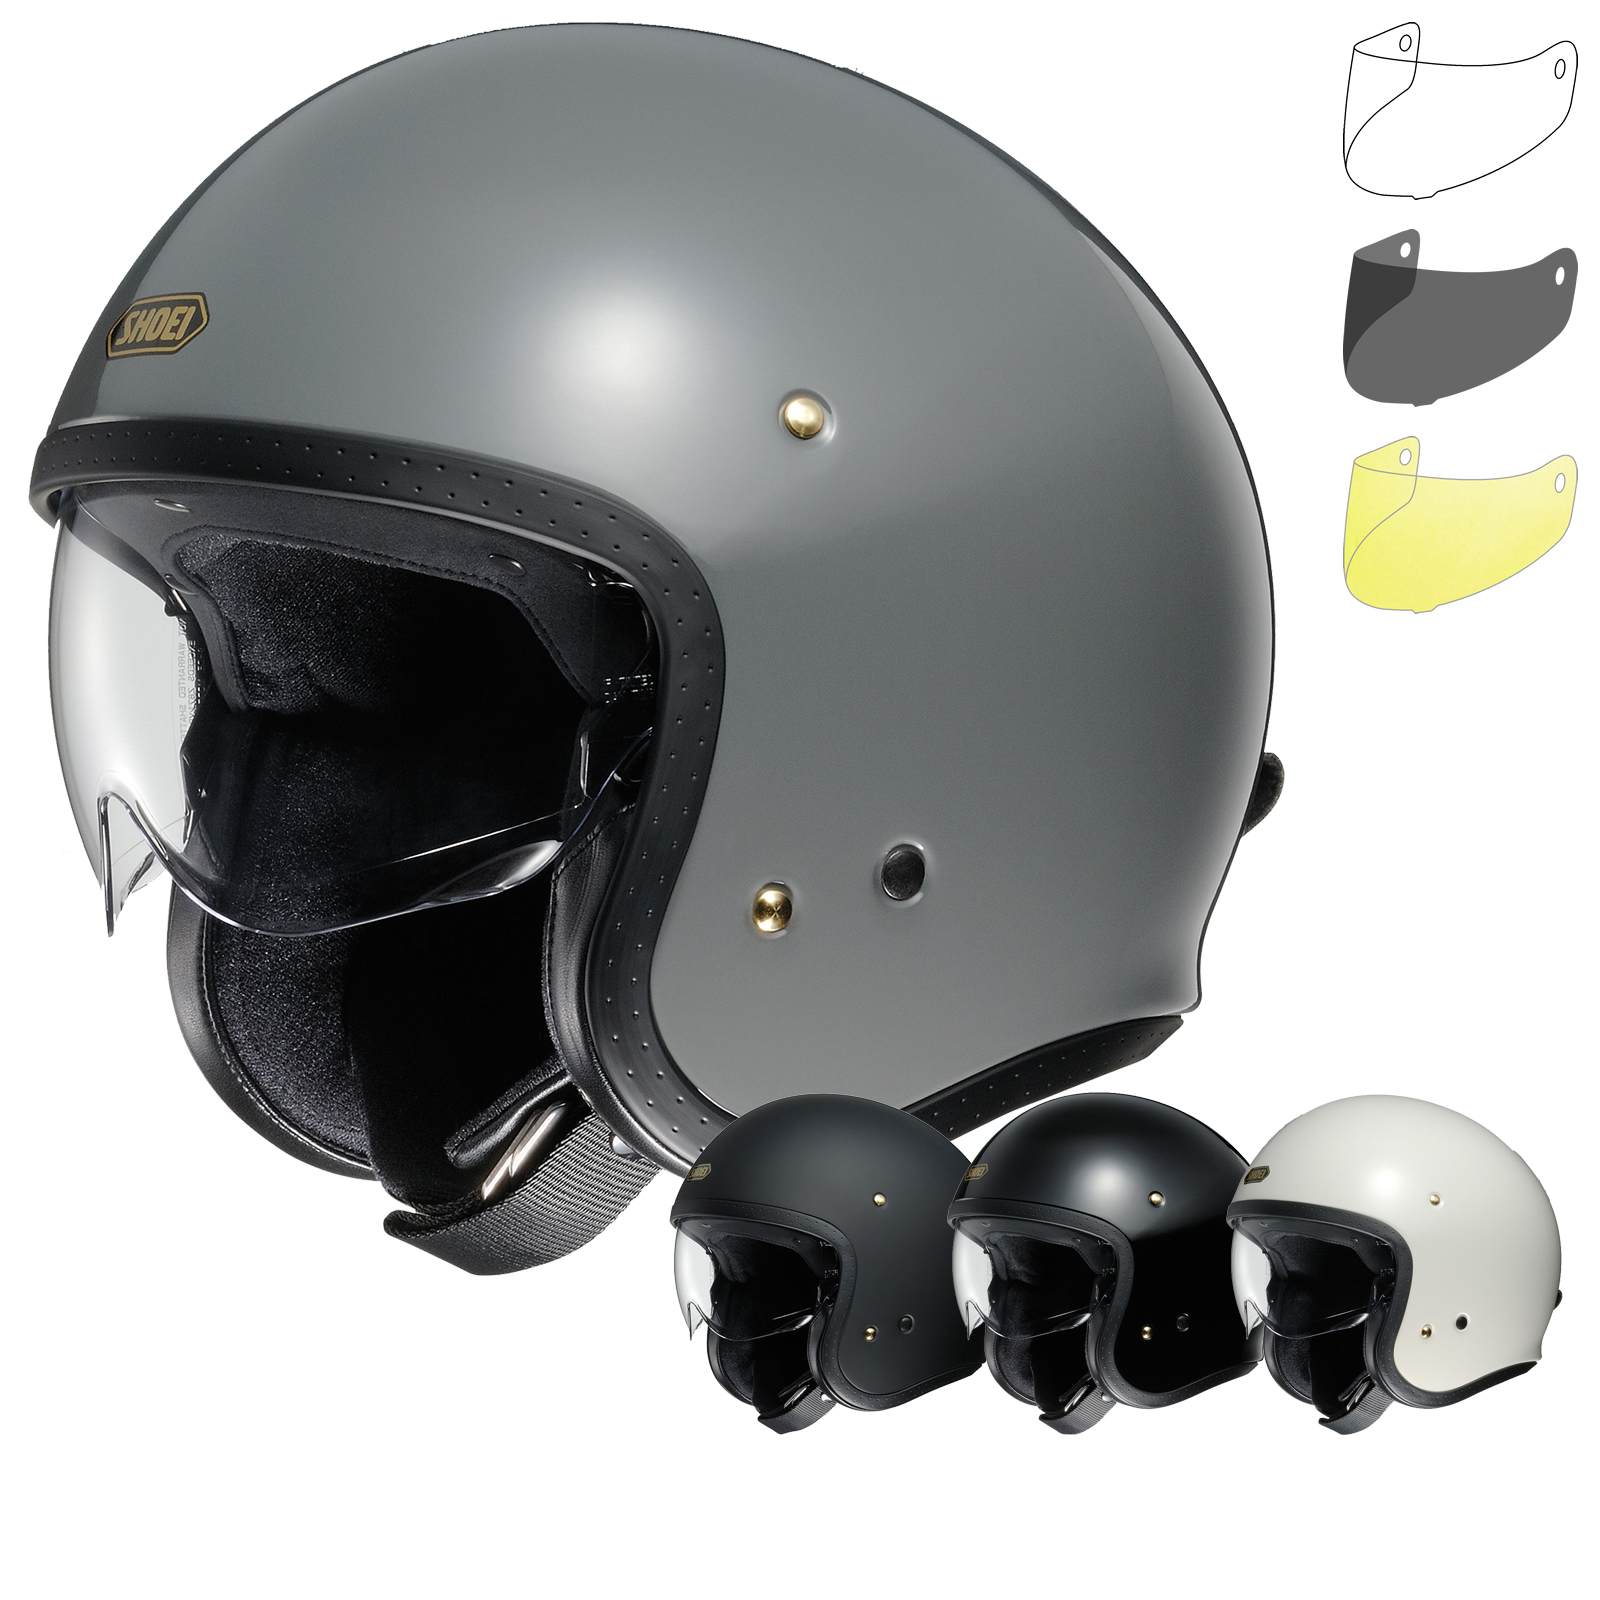 Full Motorcycle Helmet >> Shoei J.O Open Face Motorcycle Helmet & Visor - Open Face Helmets - Ghostbikes.com